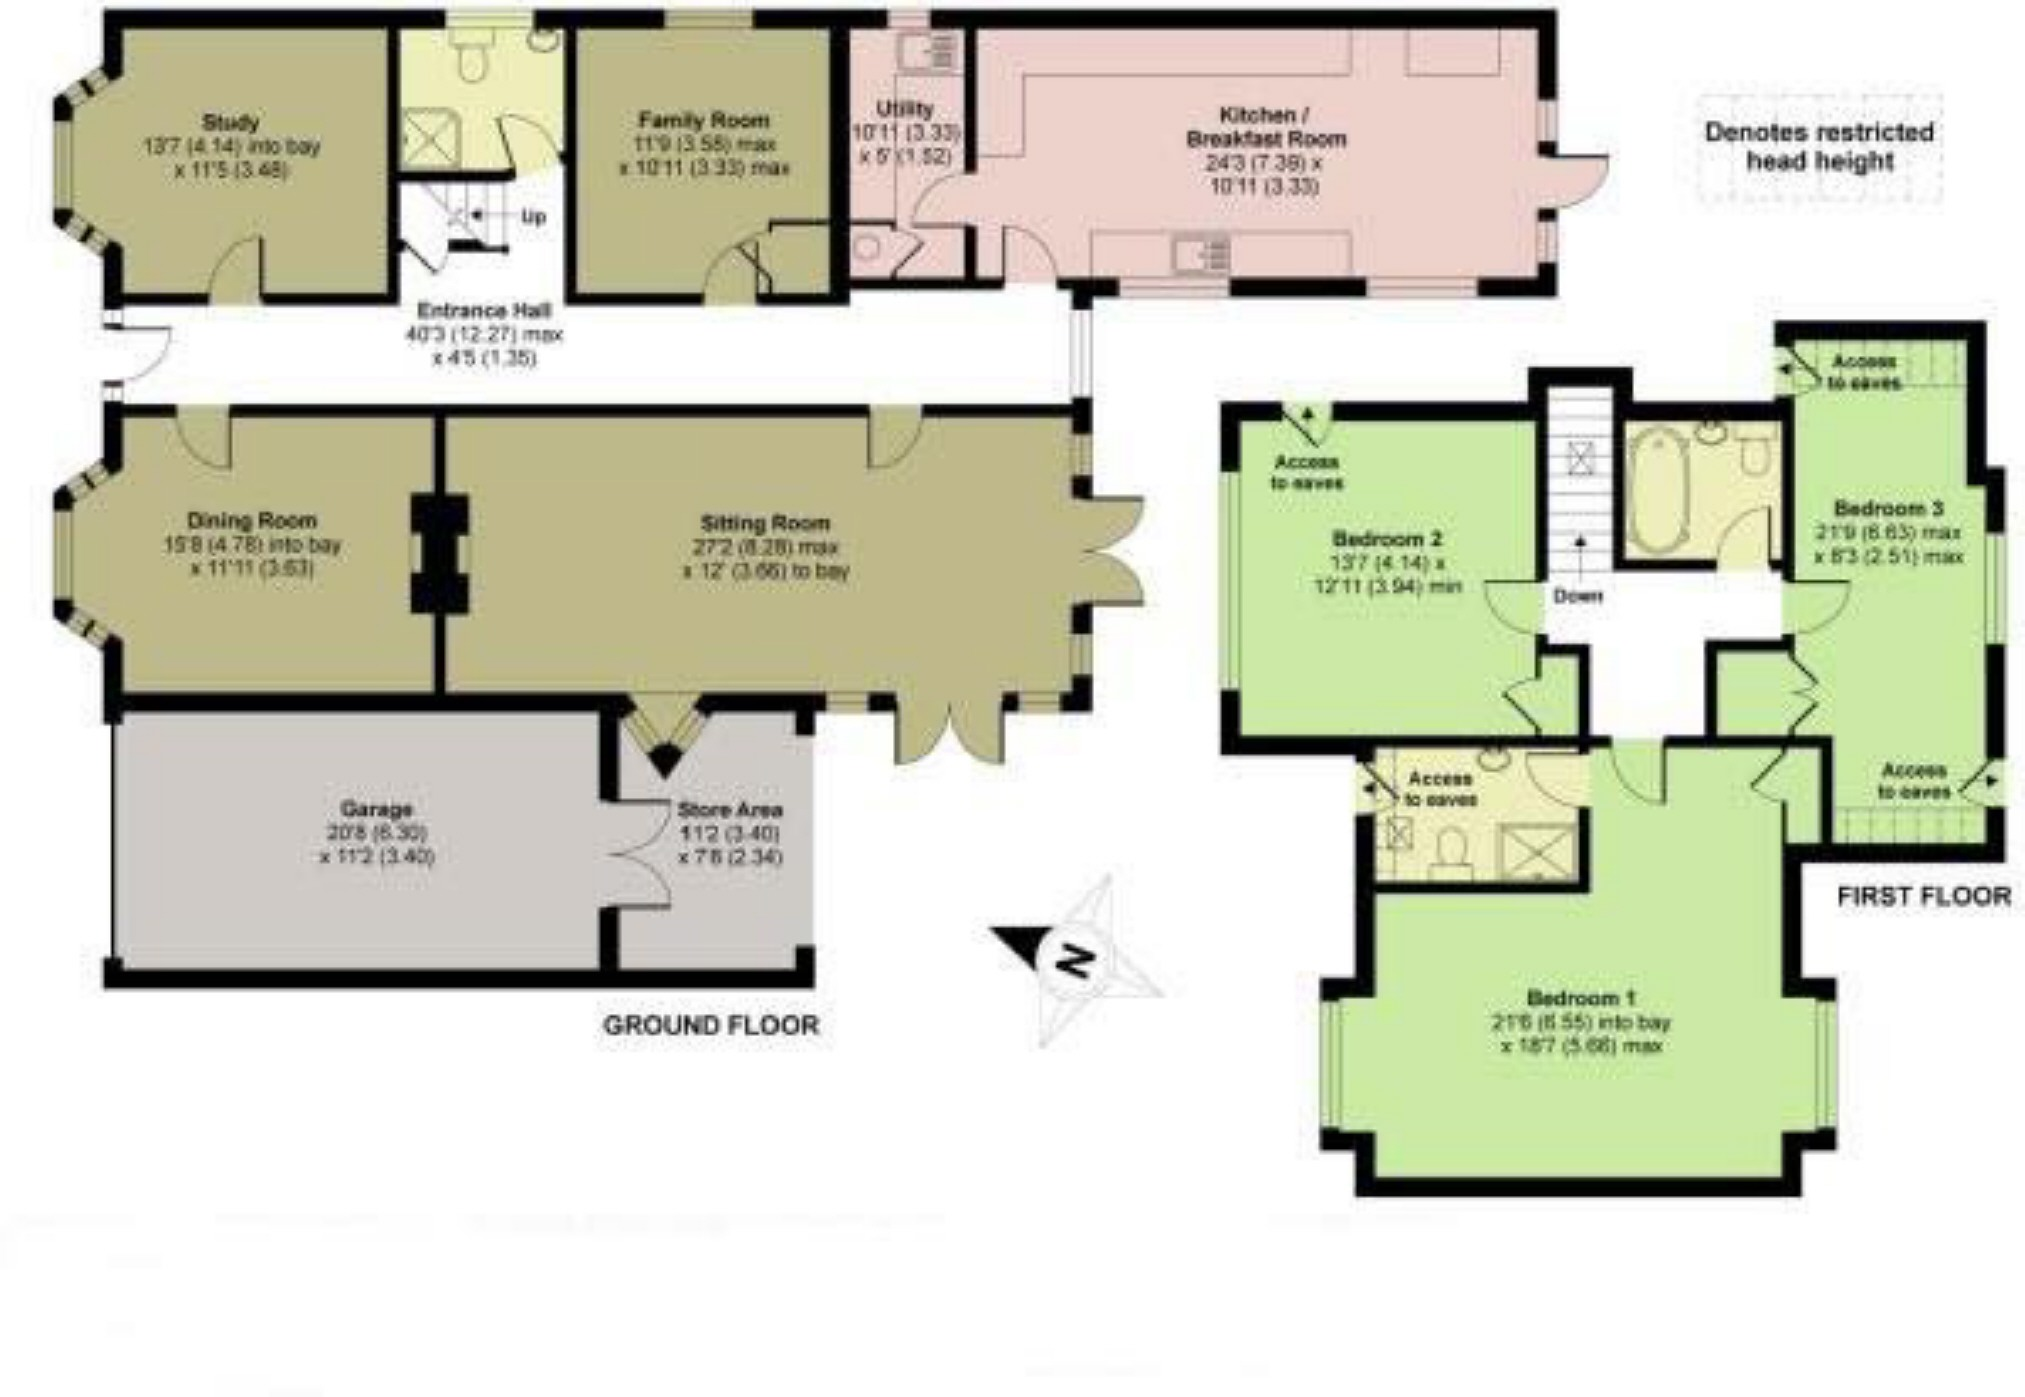 4 bedroom detached house for sale in bromham for How much is a bedroom worth in an appraisal